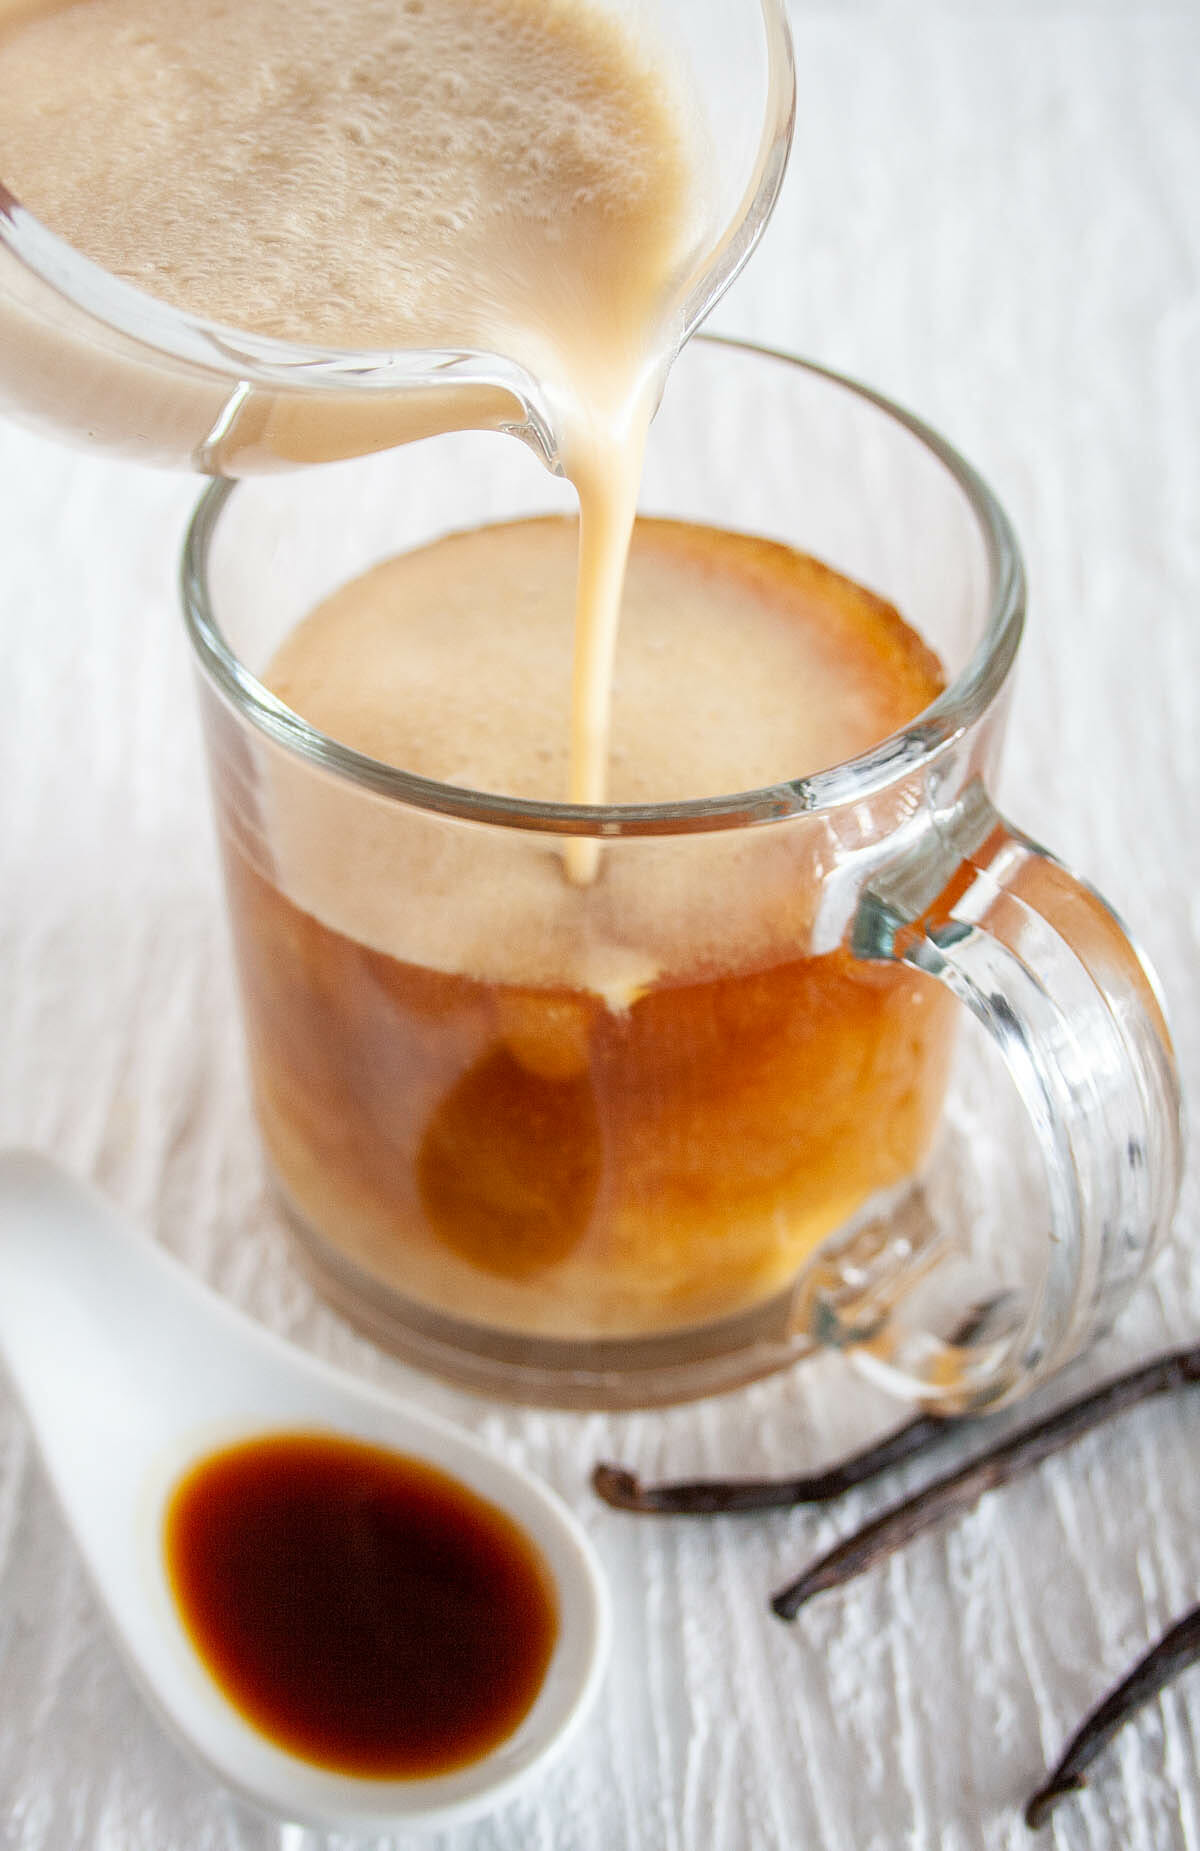 Vanilla Creamer being poured into coffee.